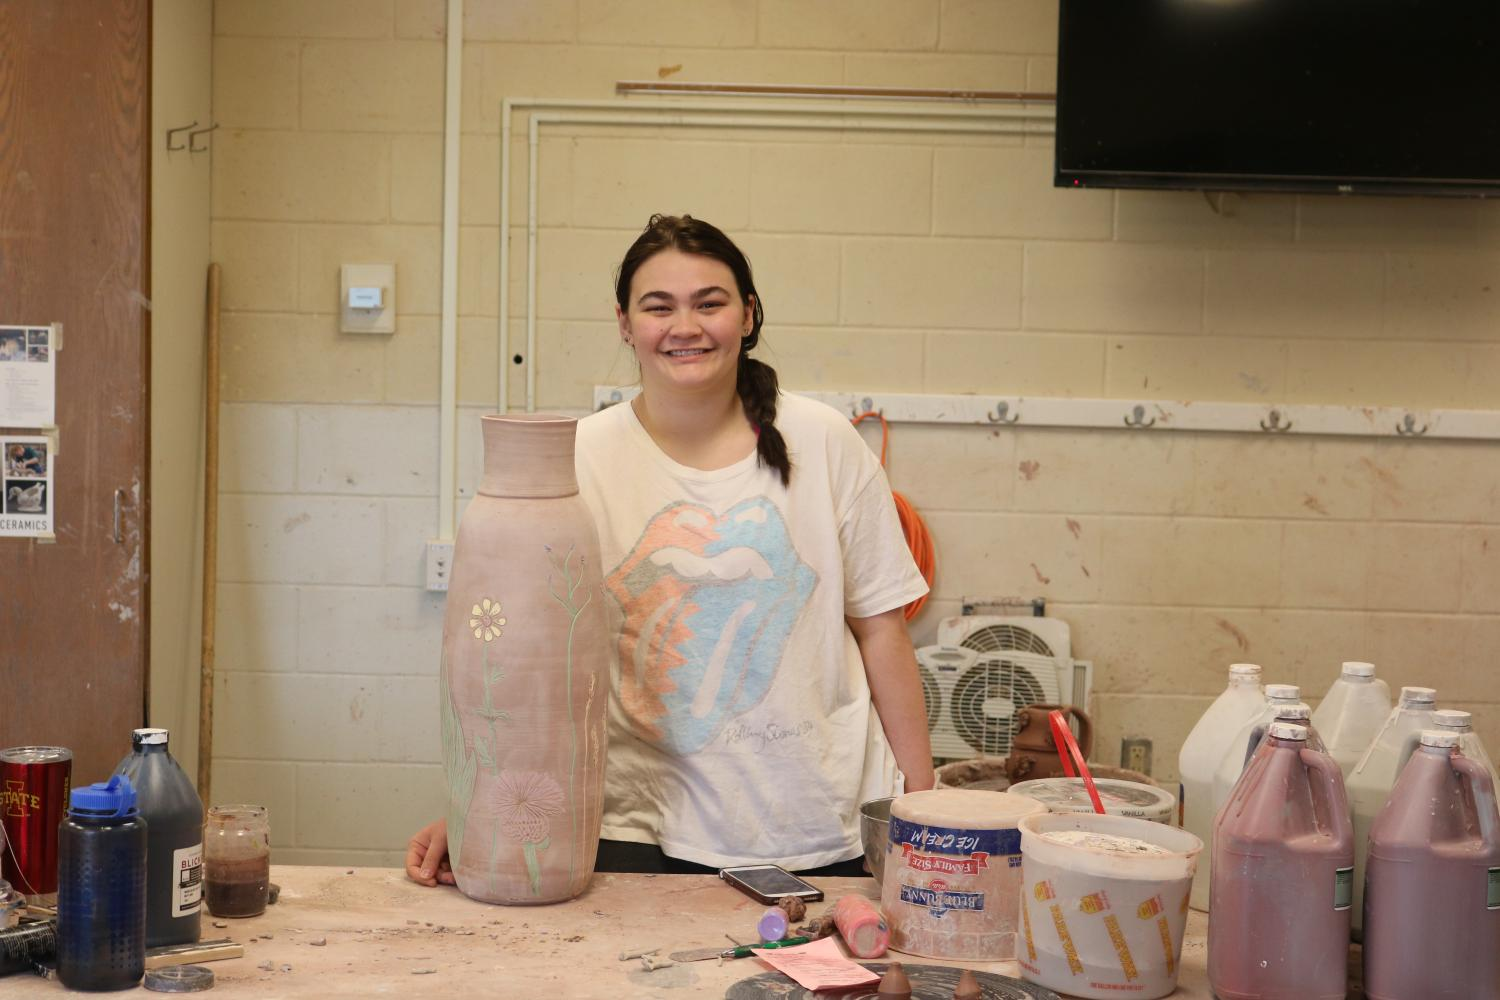 Olivia Benda '19 stands in front of her flower vase surrounded by materials used to make it in the ceramics room on May 1.